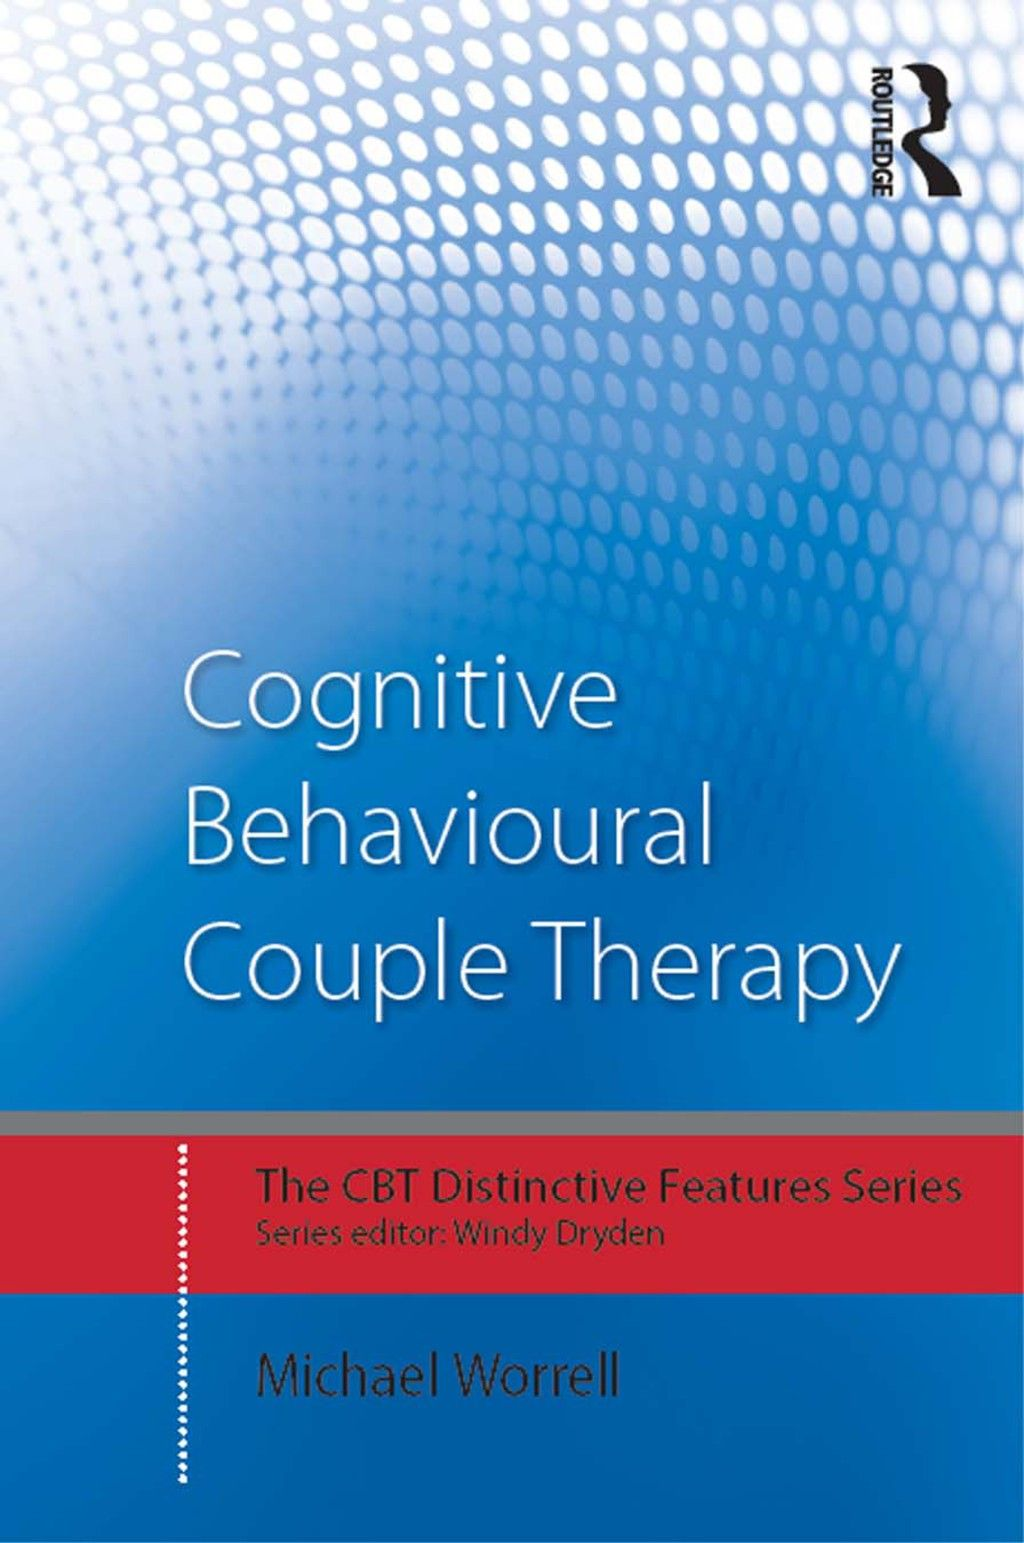 Cognitive Behavioural Couple Therapy Ebook Rental